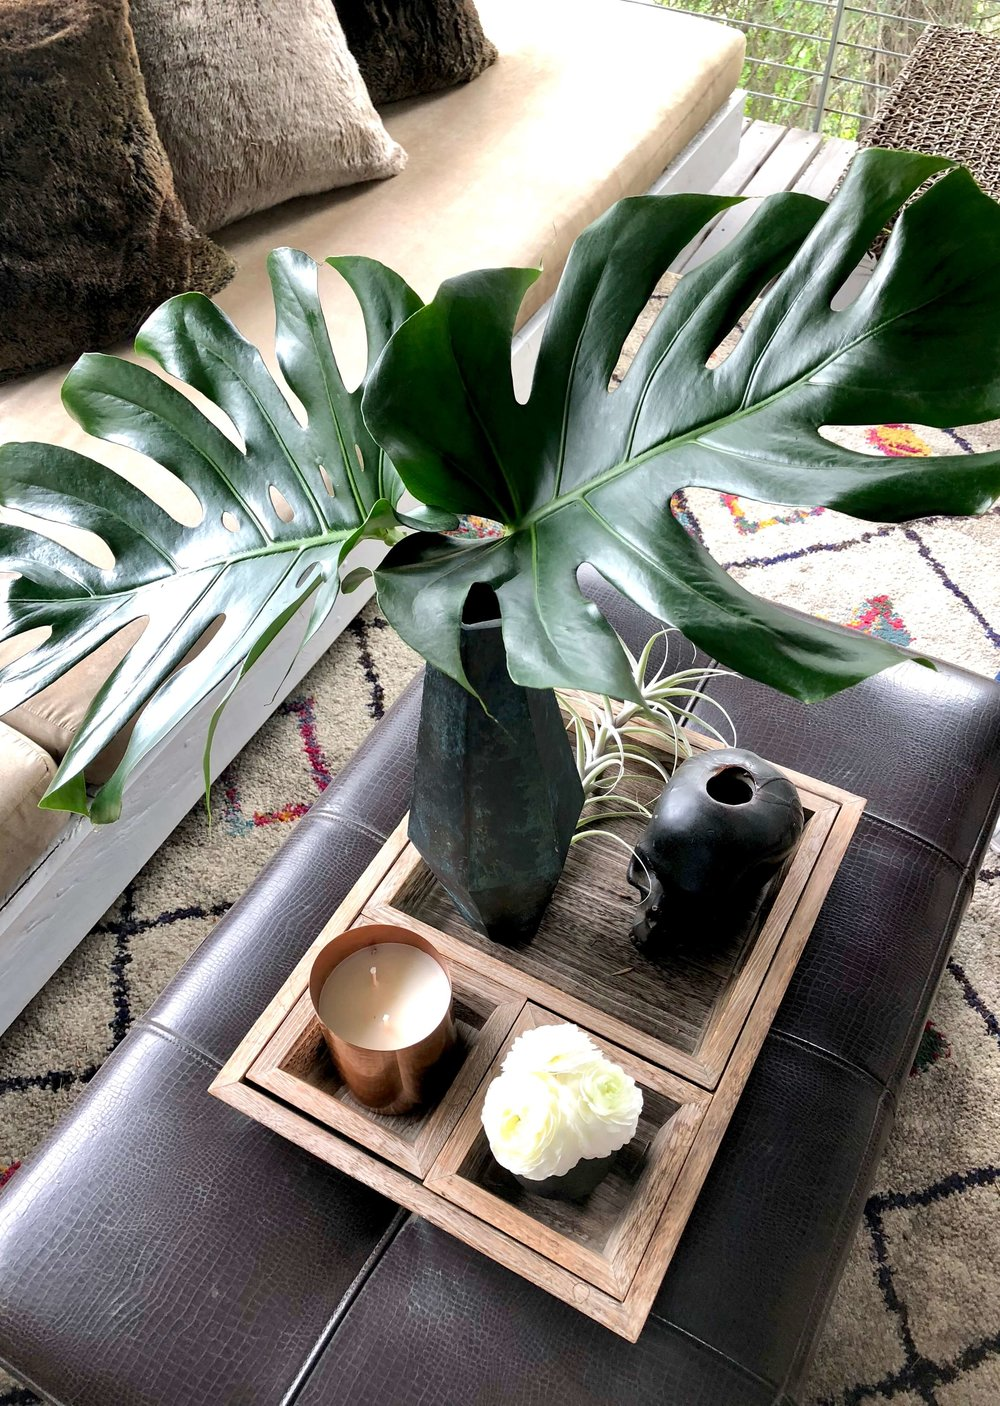 Philodendron leaves used in coffee table styling #philodendron #ottoman